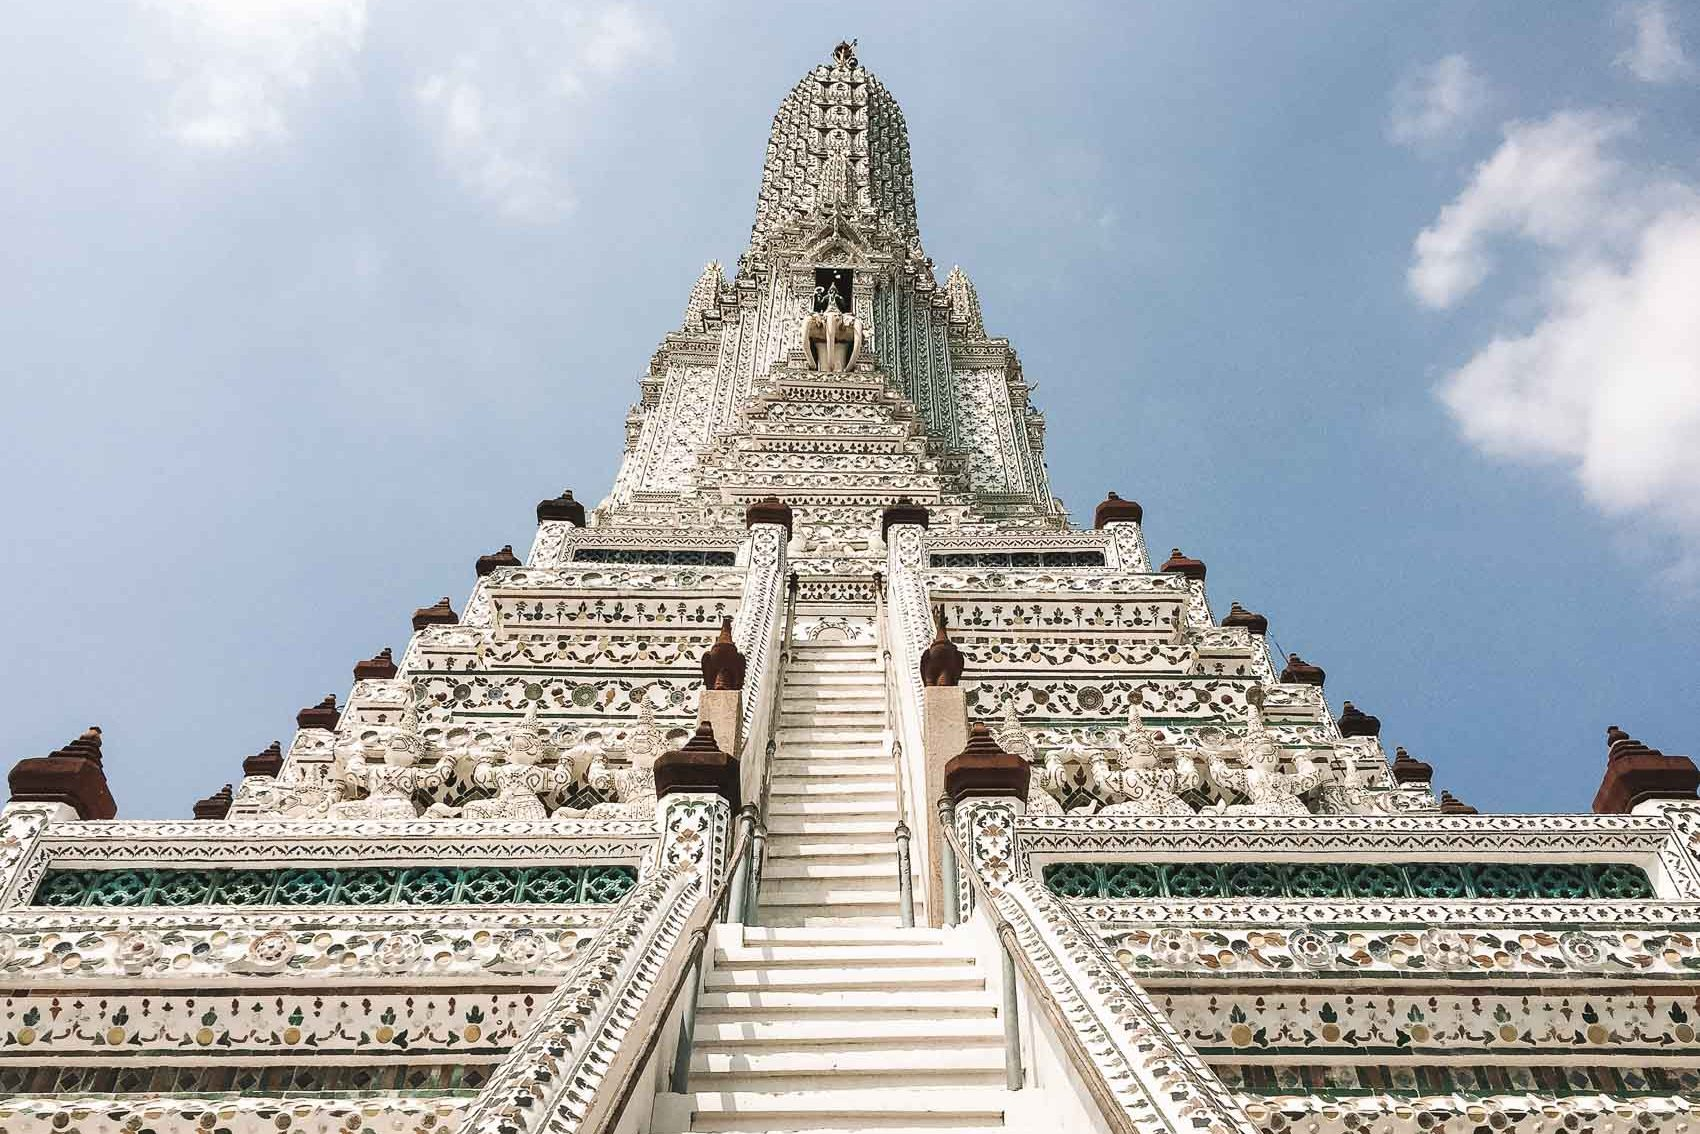 Temple with many steps in Bangkok Thailand - bucket list travel